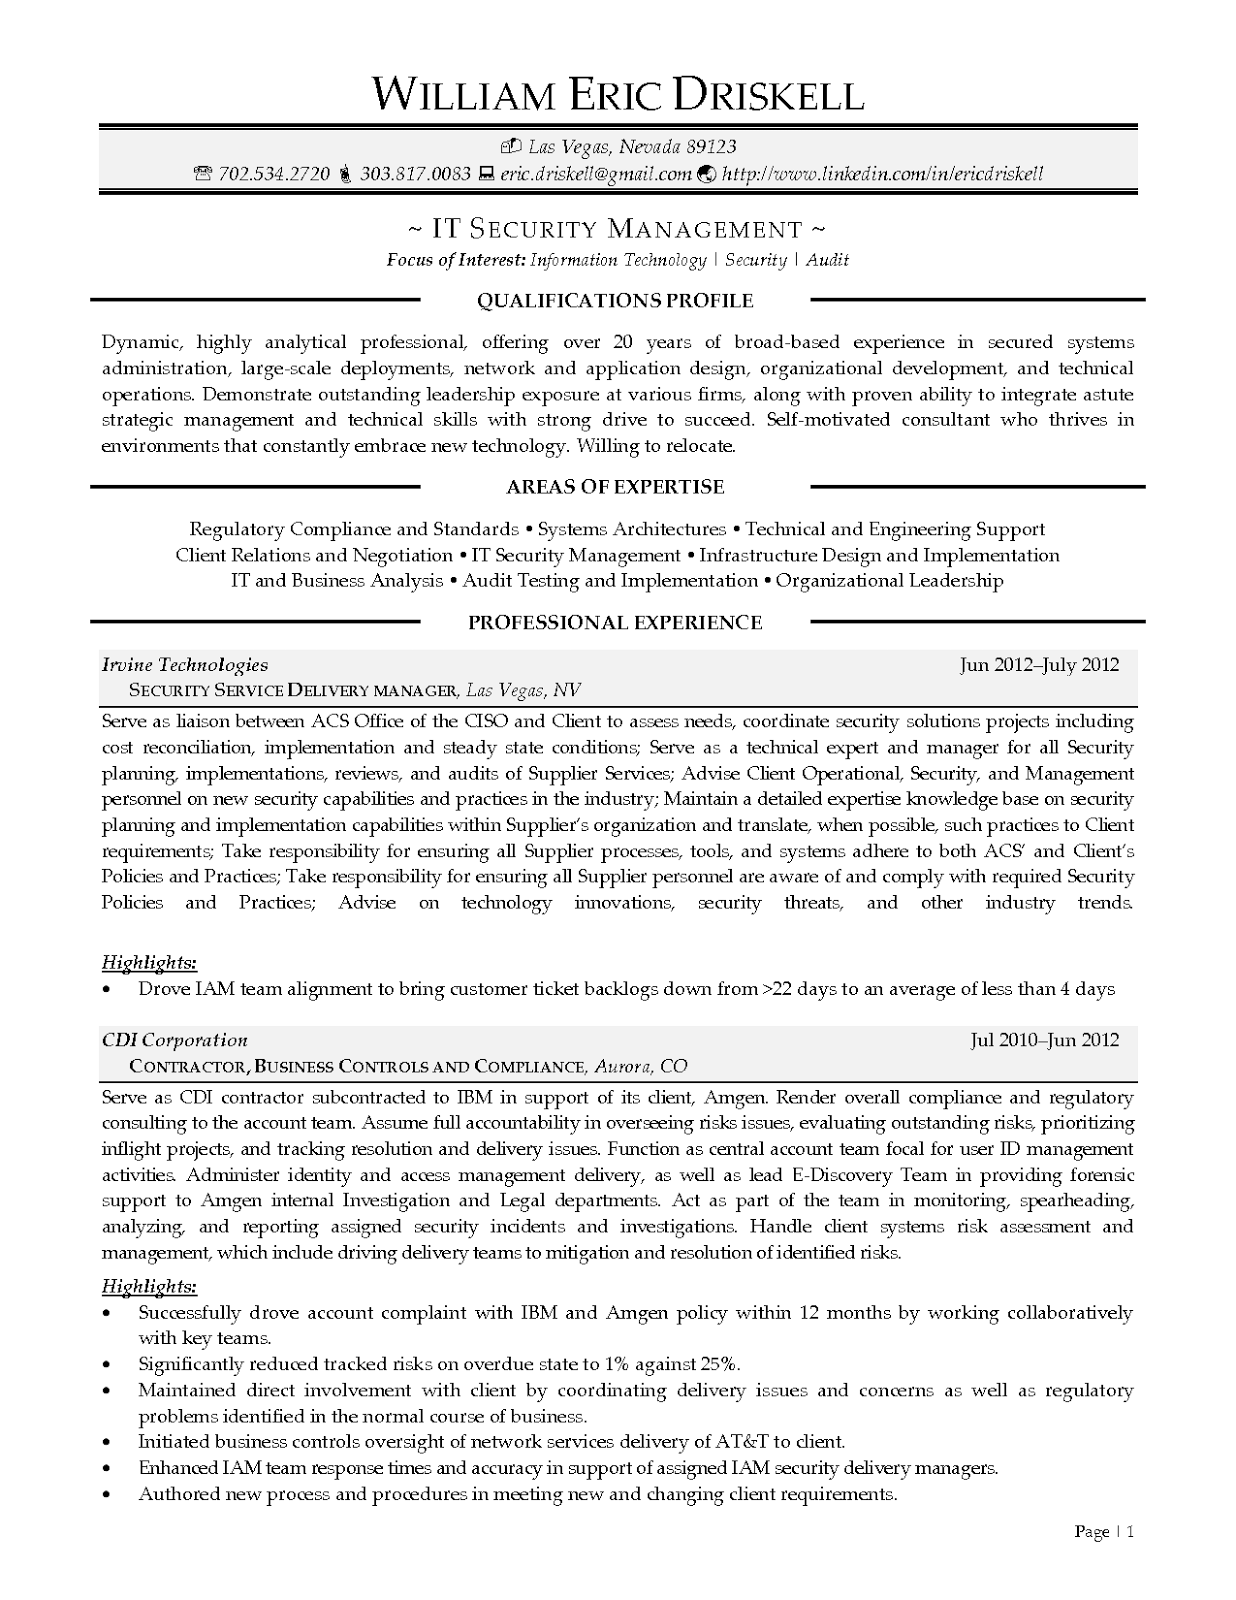 resume samples  relocation consultant resume